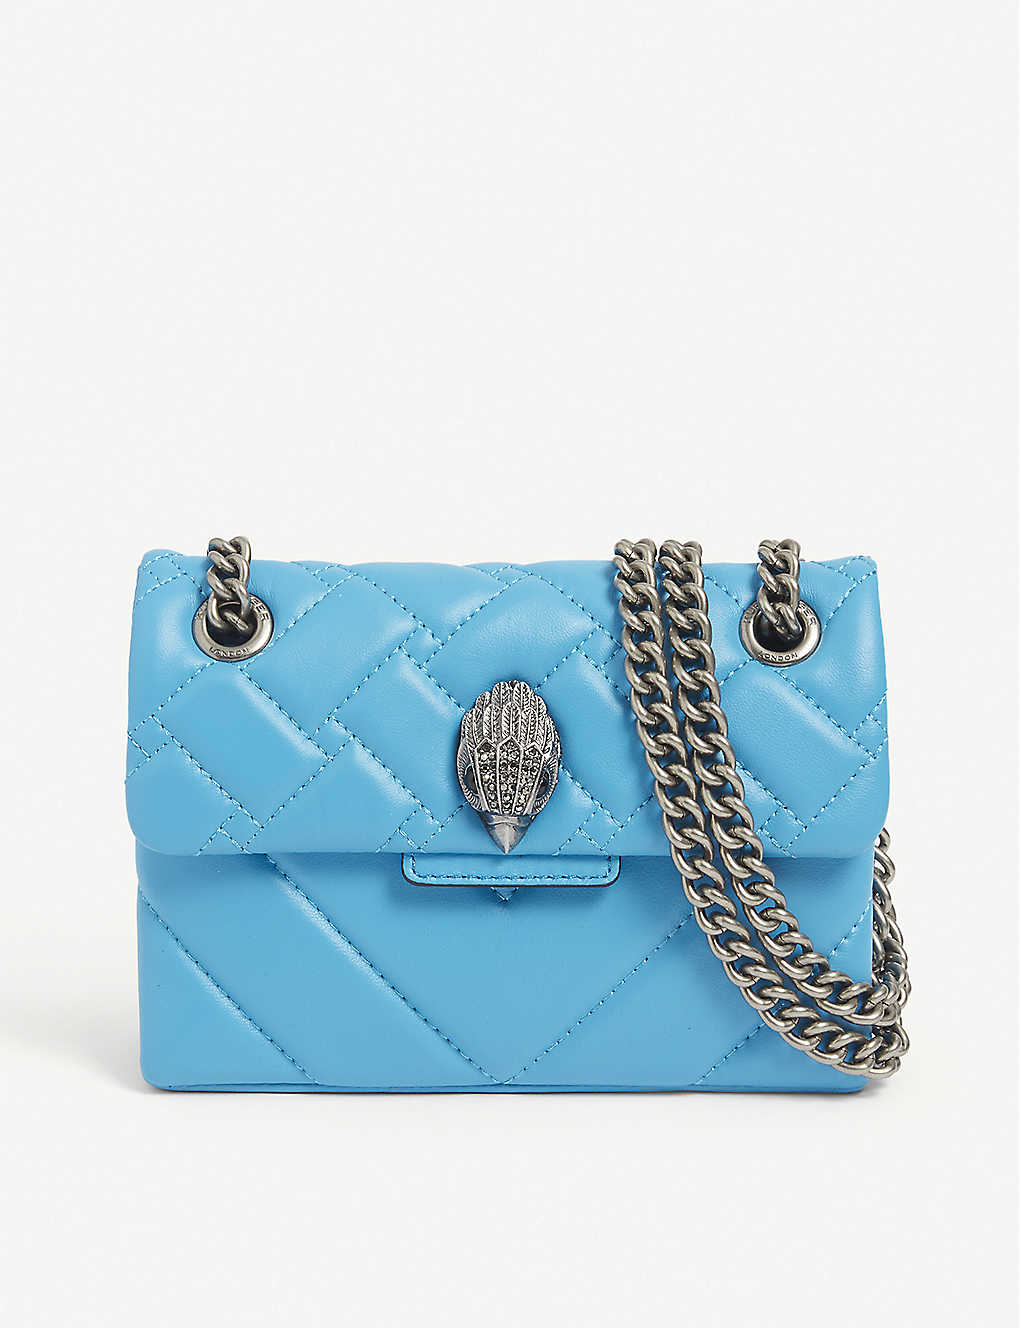 KURT GEIGER LONDON: Mini Kensington leather shoulder bag